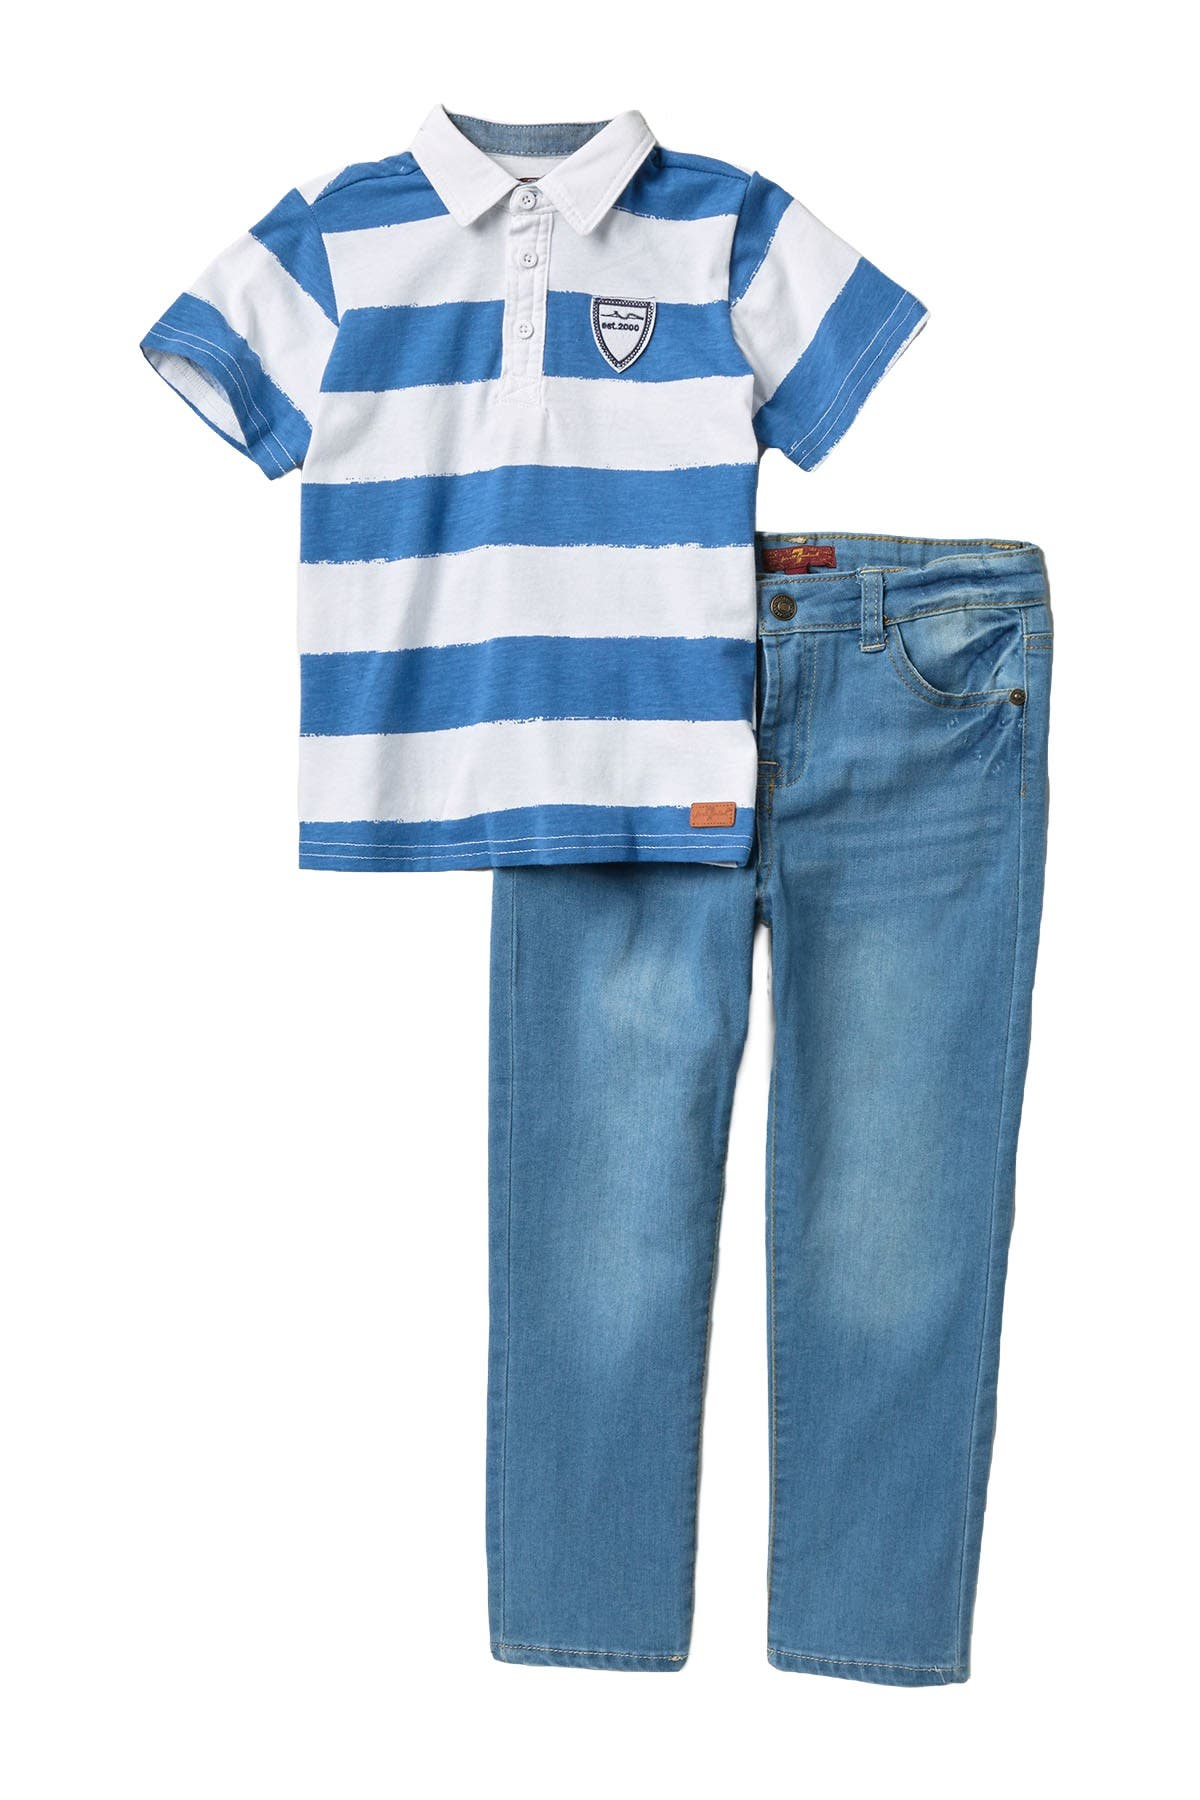 Image of 7 For All Mankind Rugby T-Shirt & Pants Set